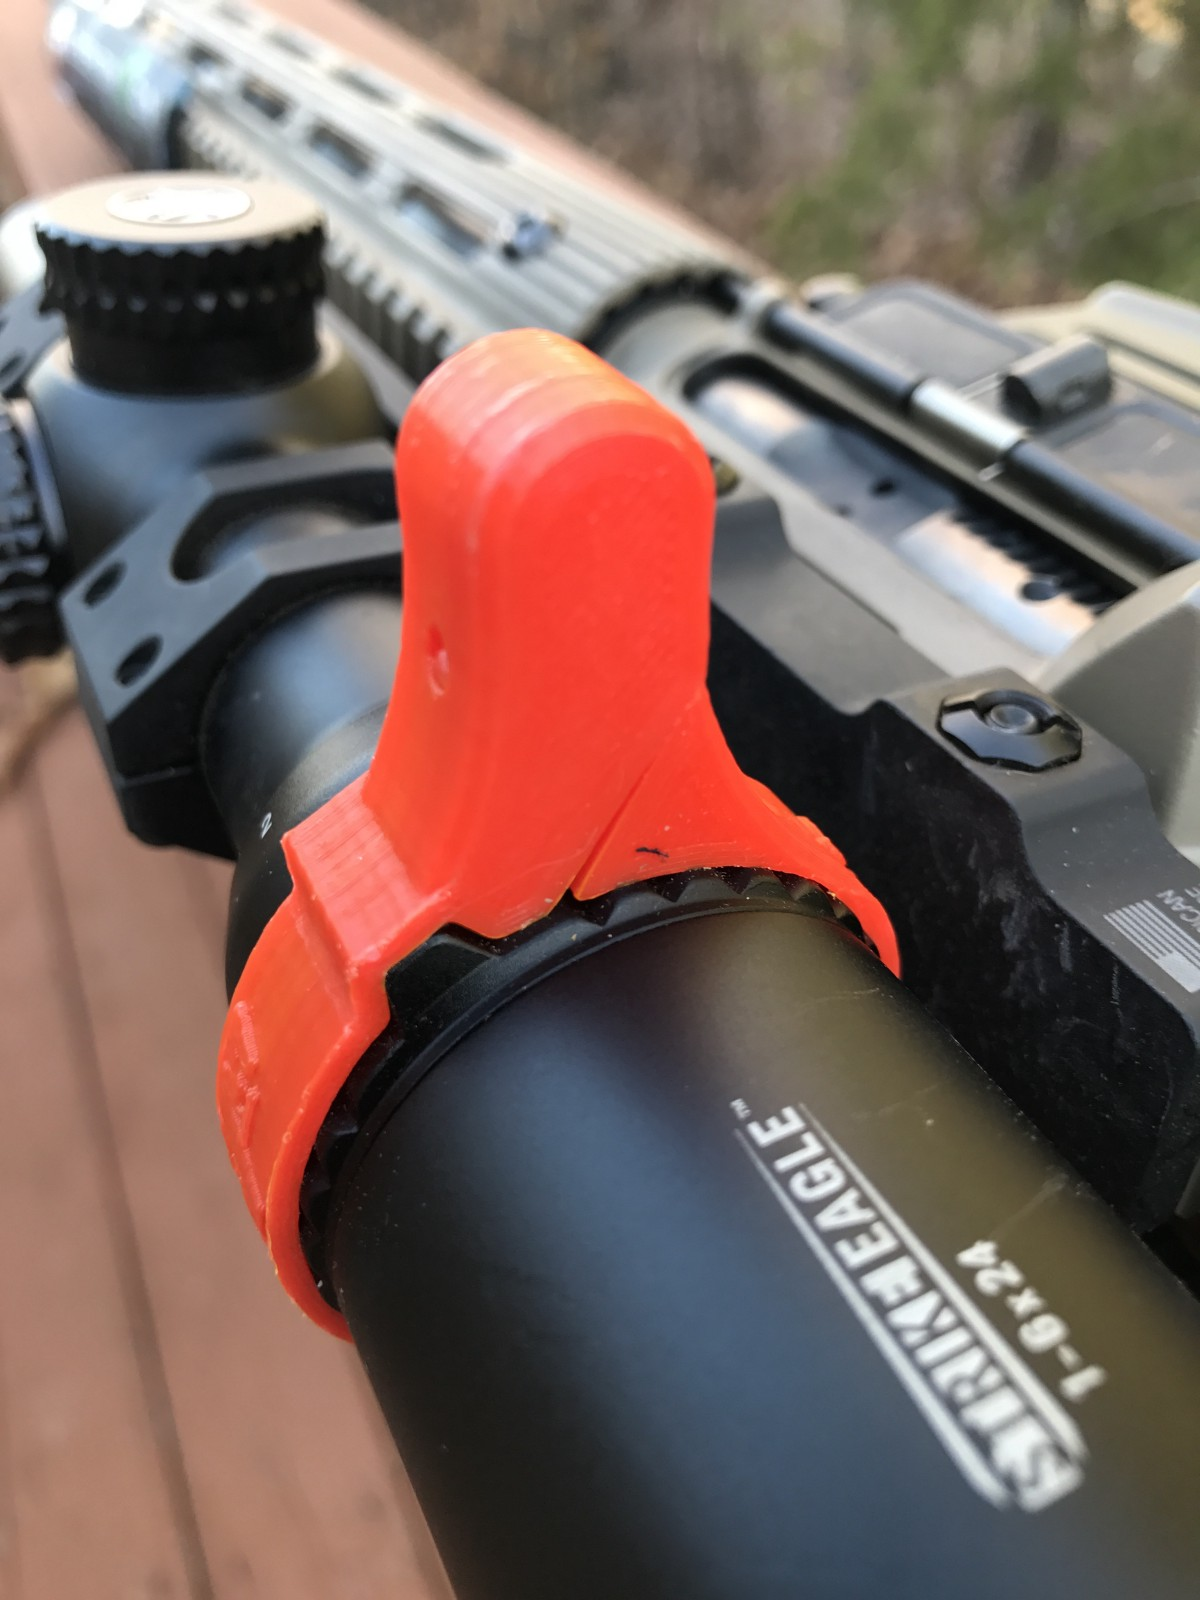 Missouri Company Makes Affordable Sturdy Scope Throw Levers